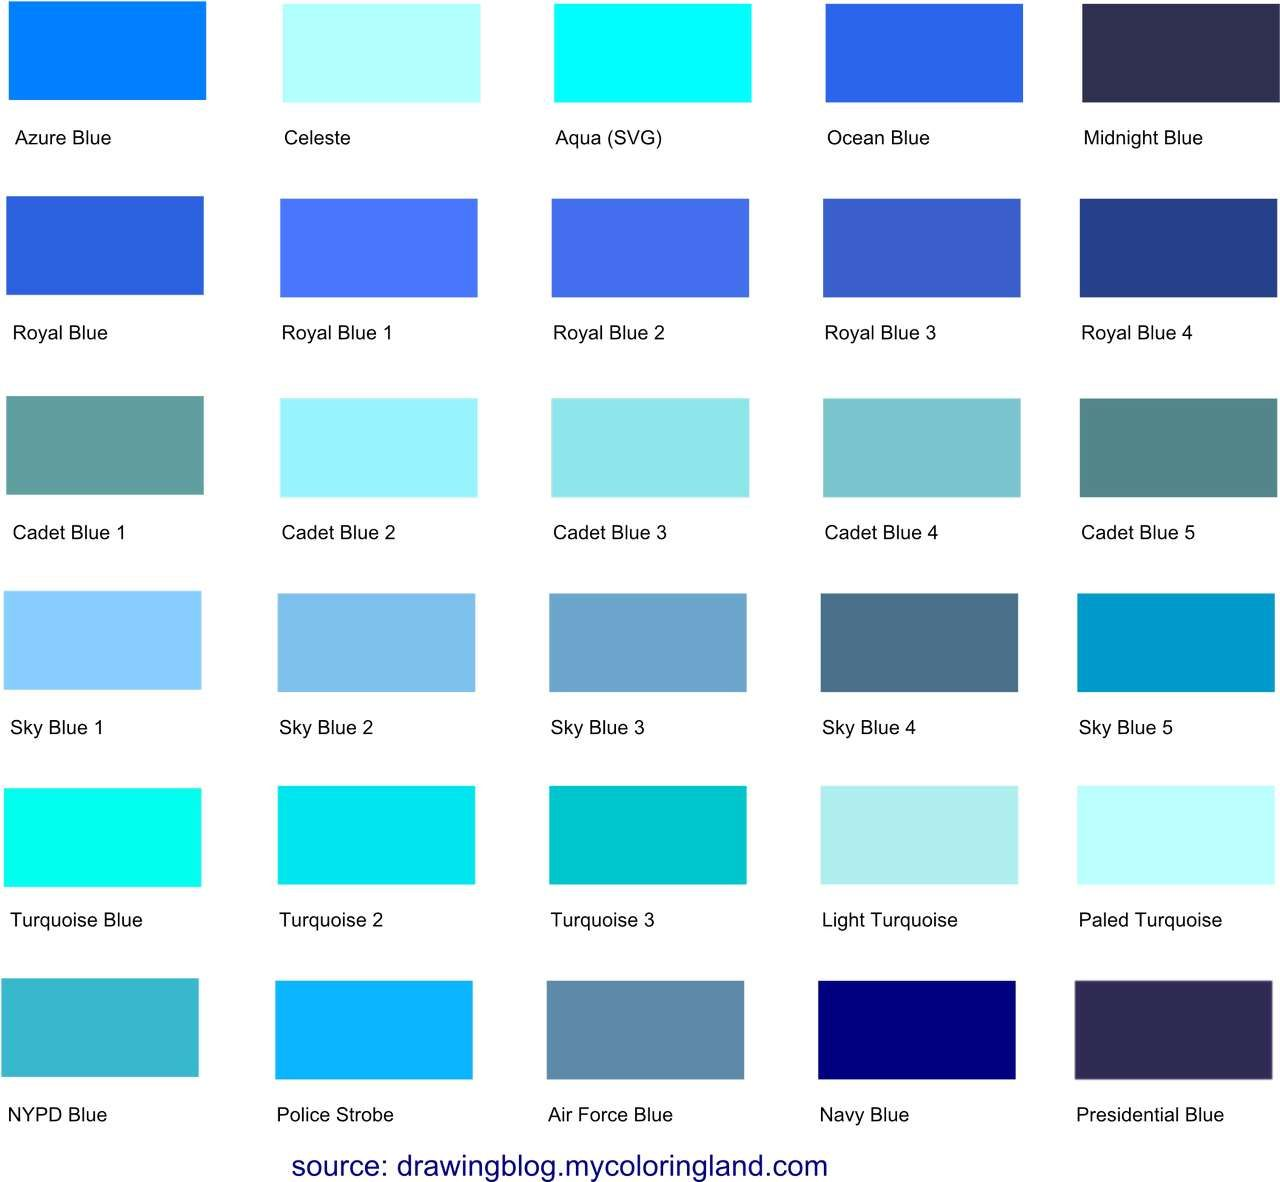 This Is The Largest List Of Diffe Blue Shades Hues And Tints On Web With 225 Colors Together Their Names Rop